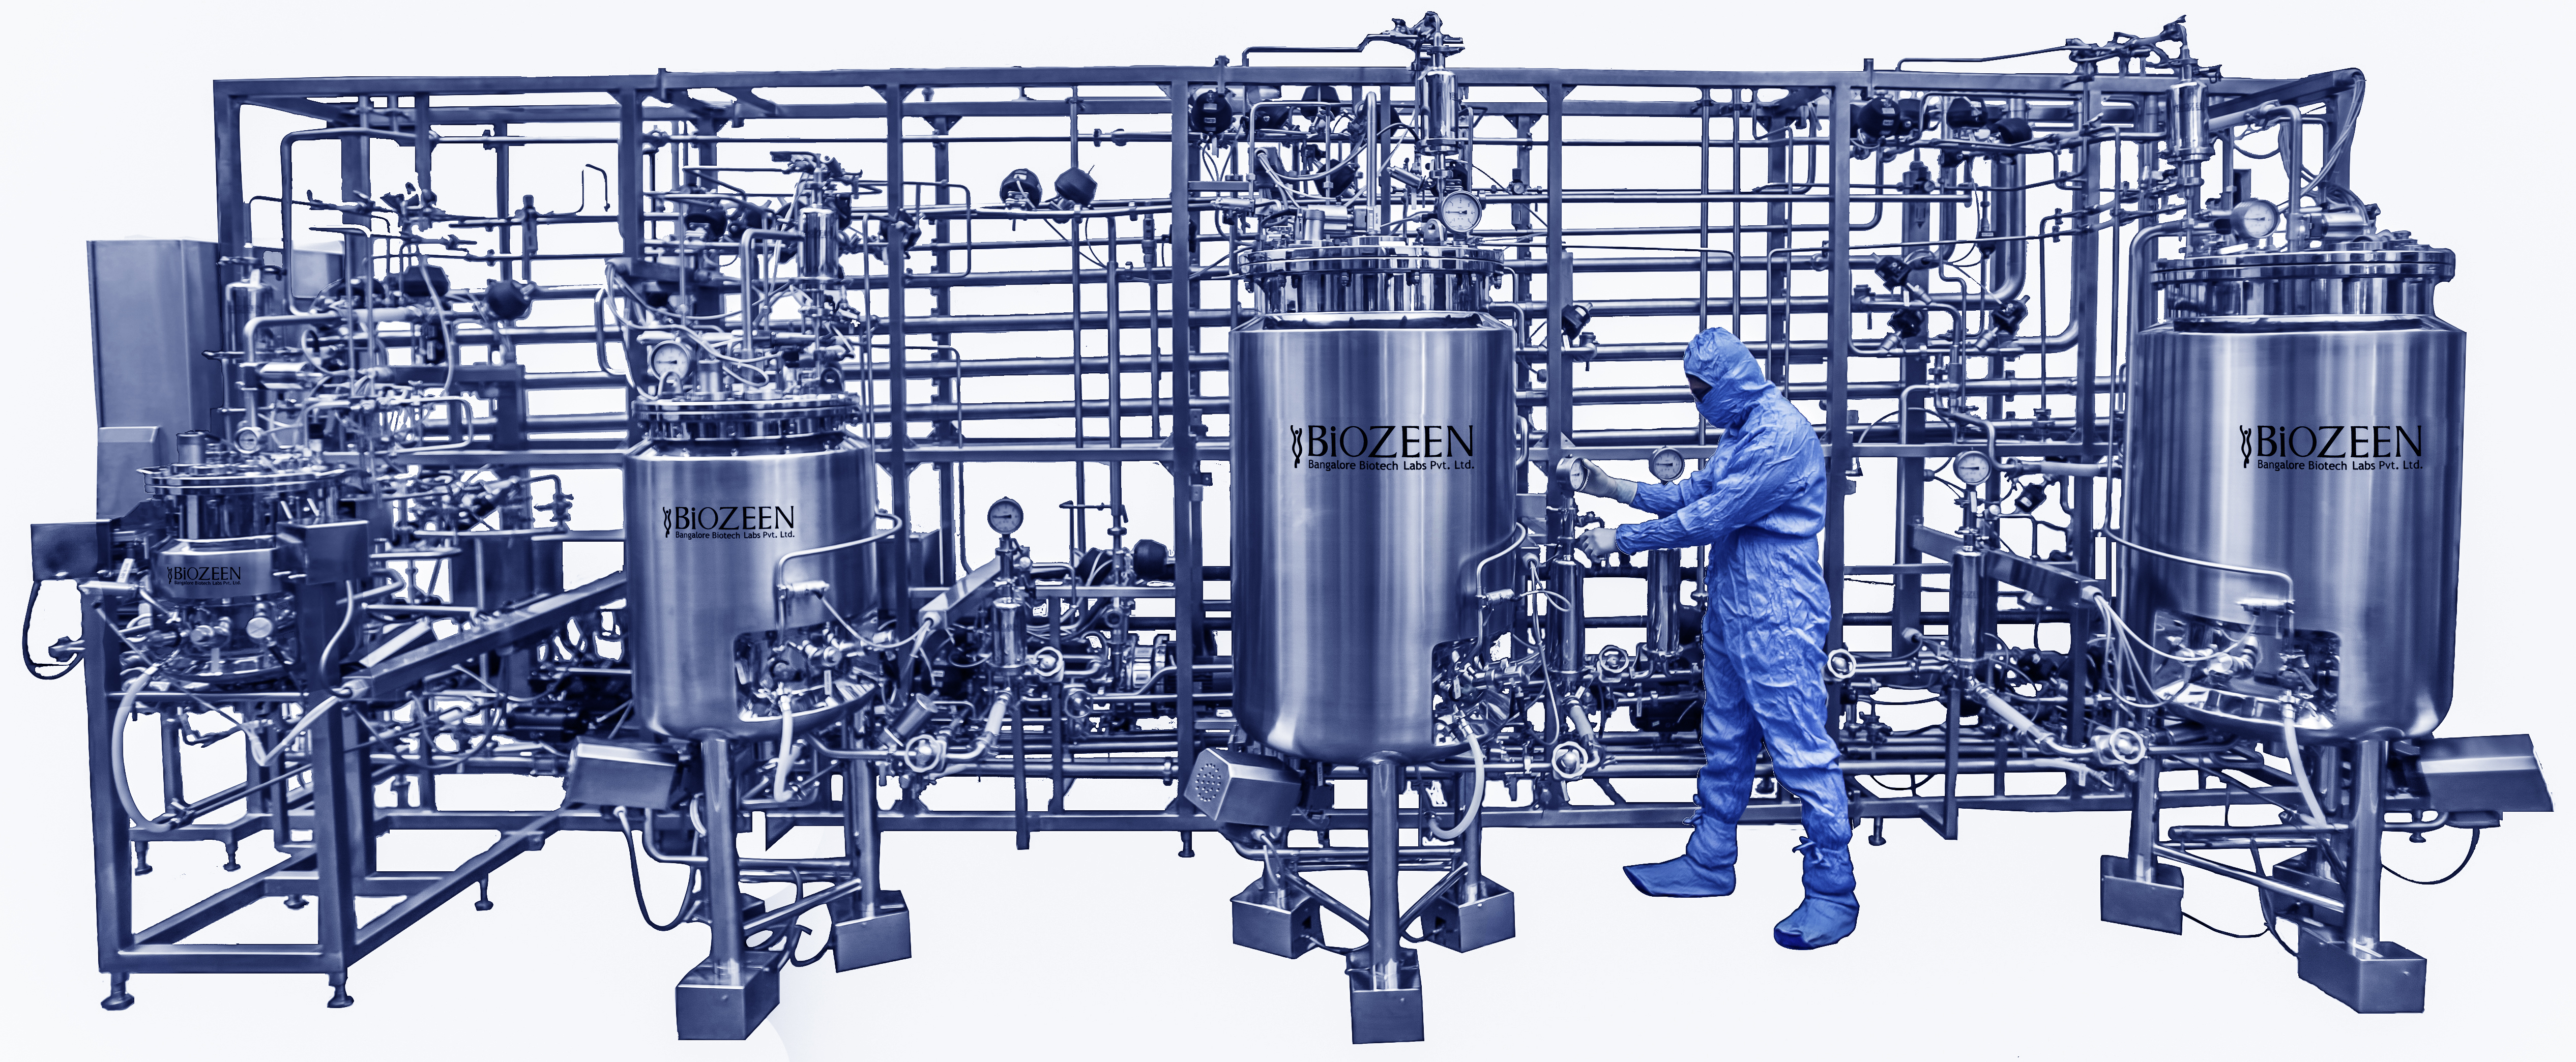 Process, Upstream Equipment and People Support for the Biopharmaceutical & Biotech industry.